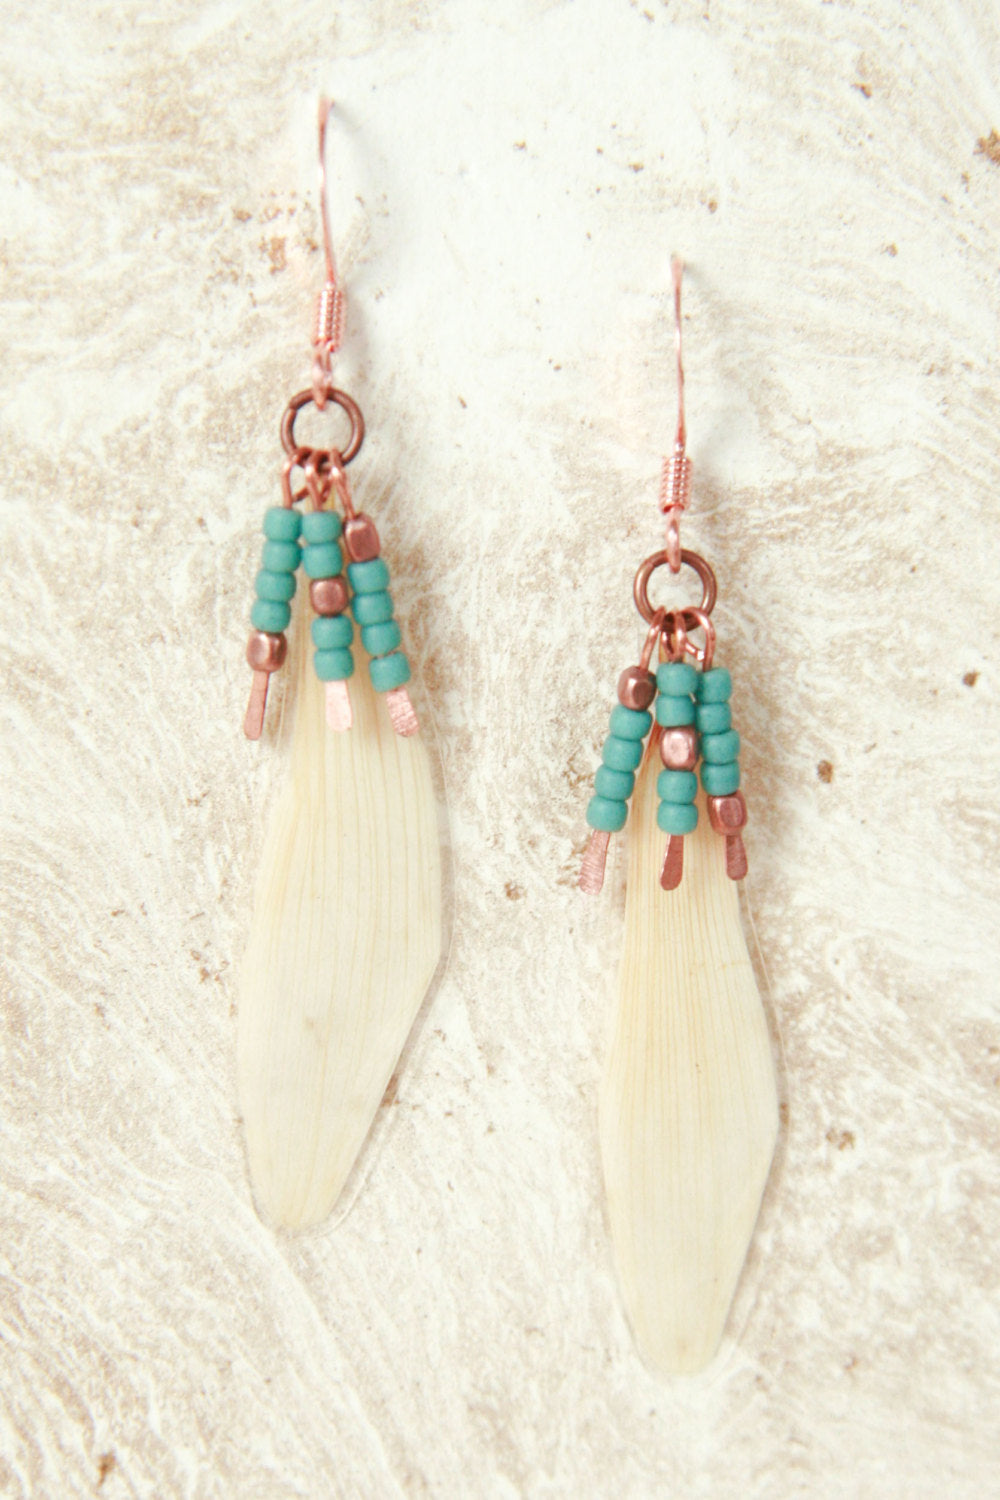 White Daisy Pressed Flower Earrings with Copper & Turquoise Glass Beads